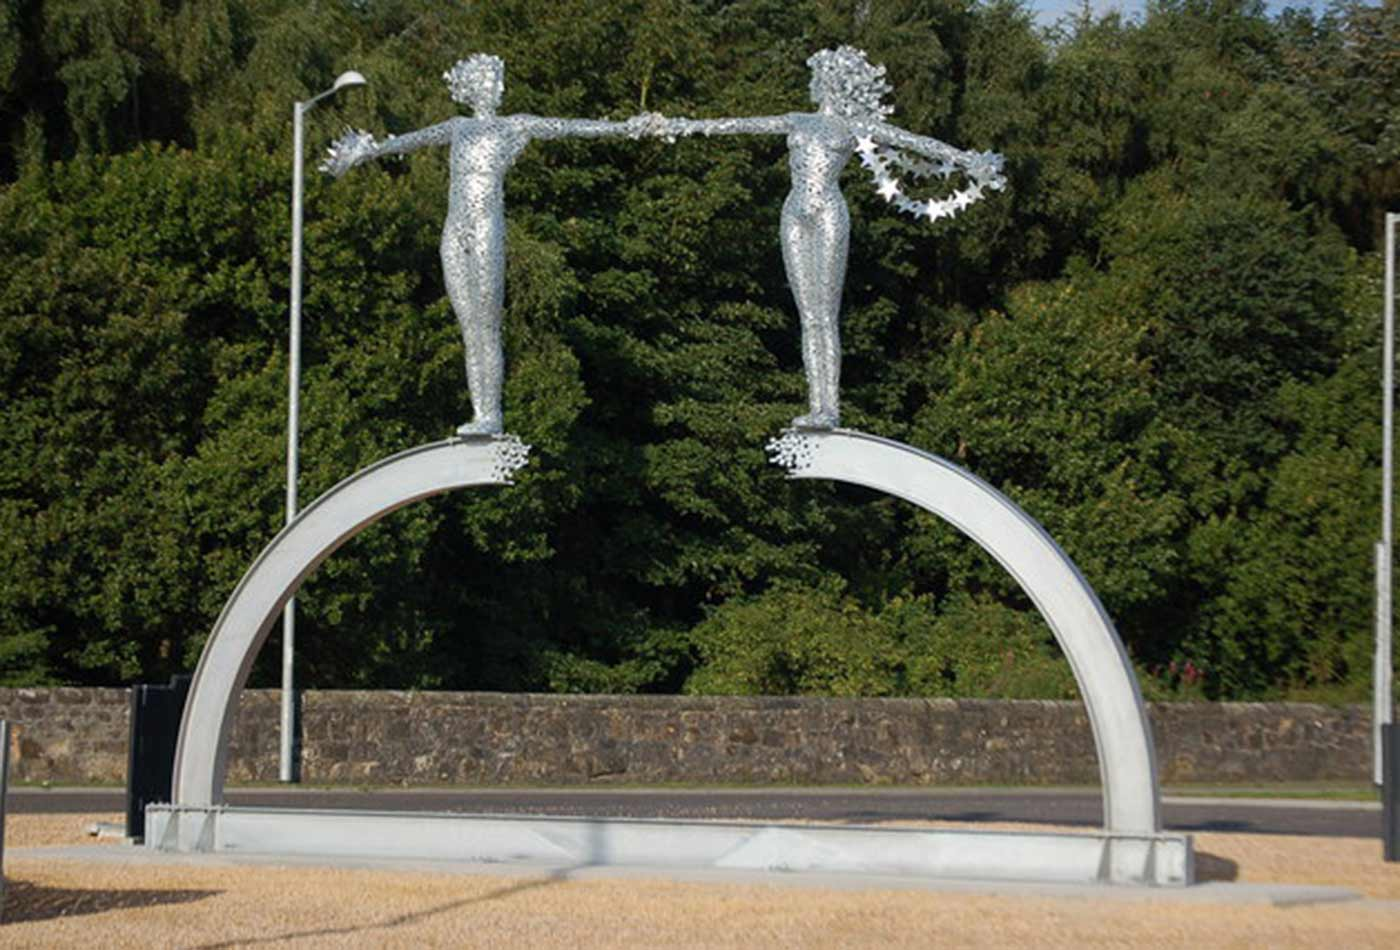 Sculpture by Andy Scott, one of several at roundabouts in Clackmannanshire.